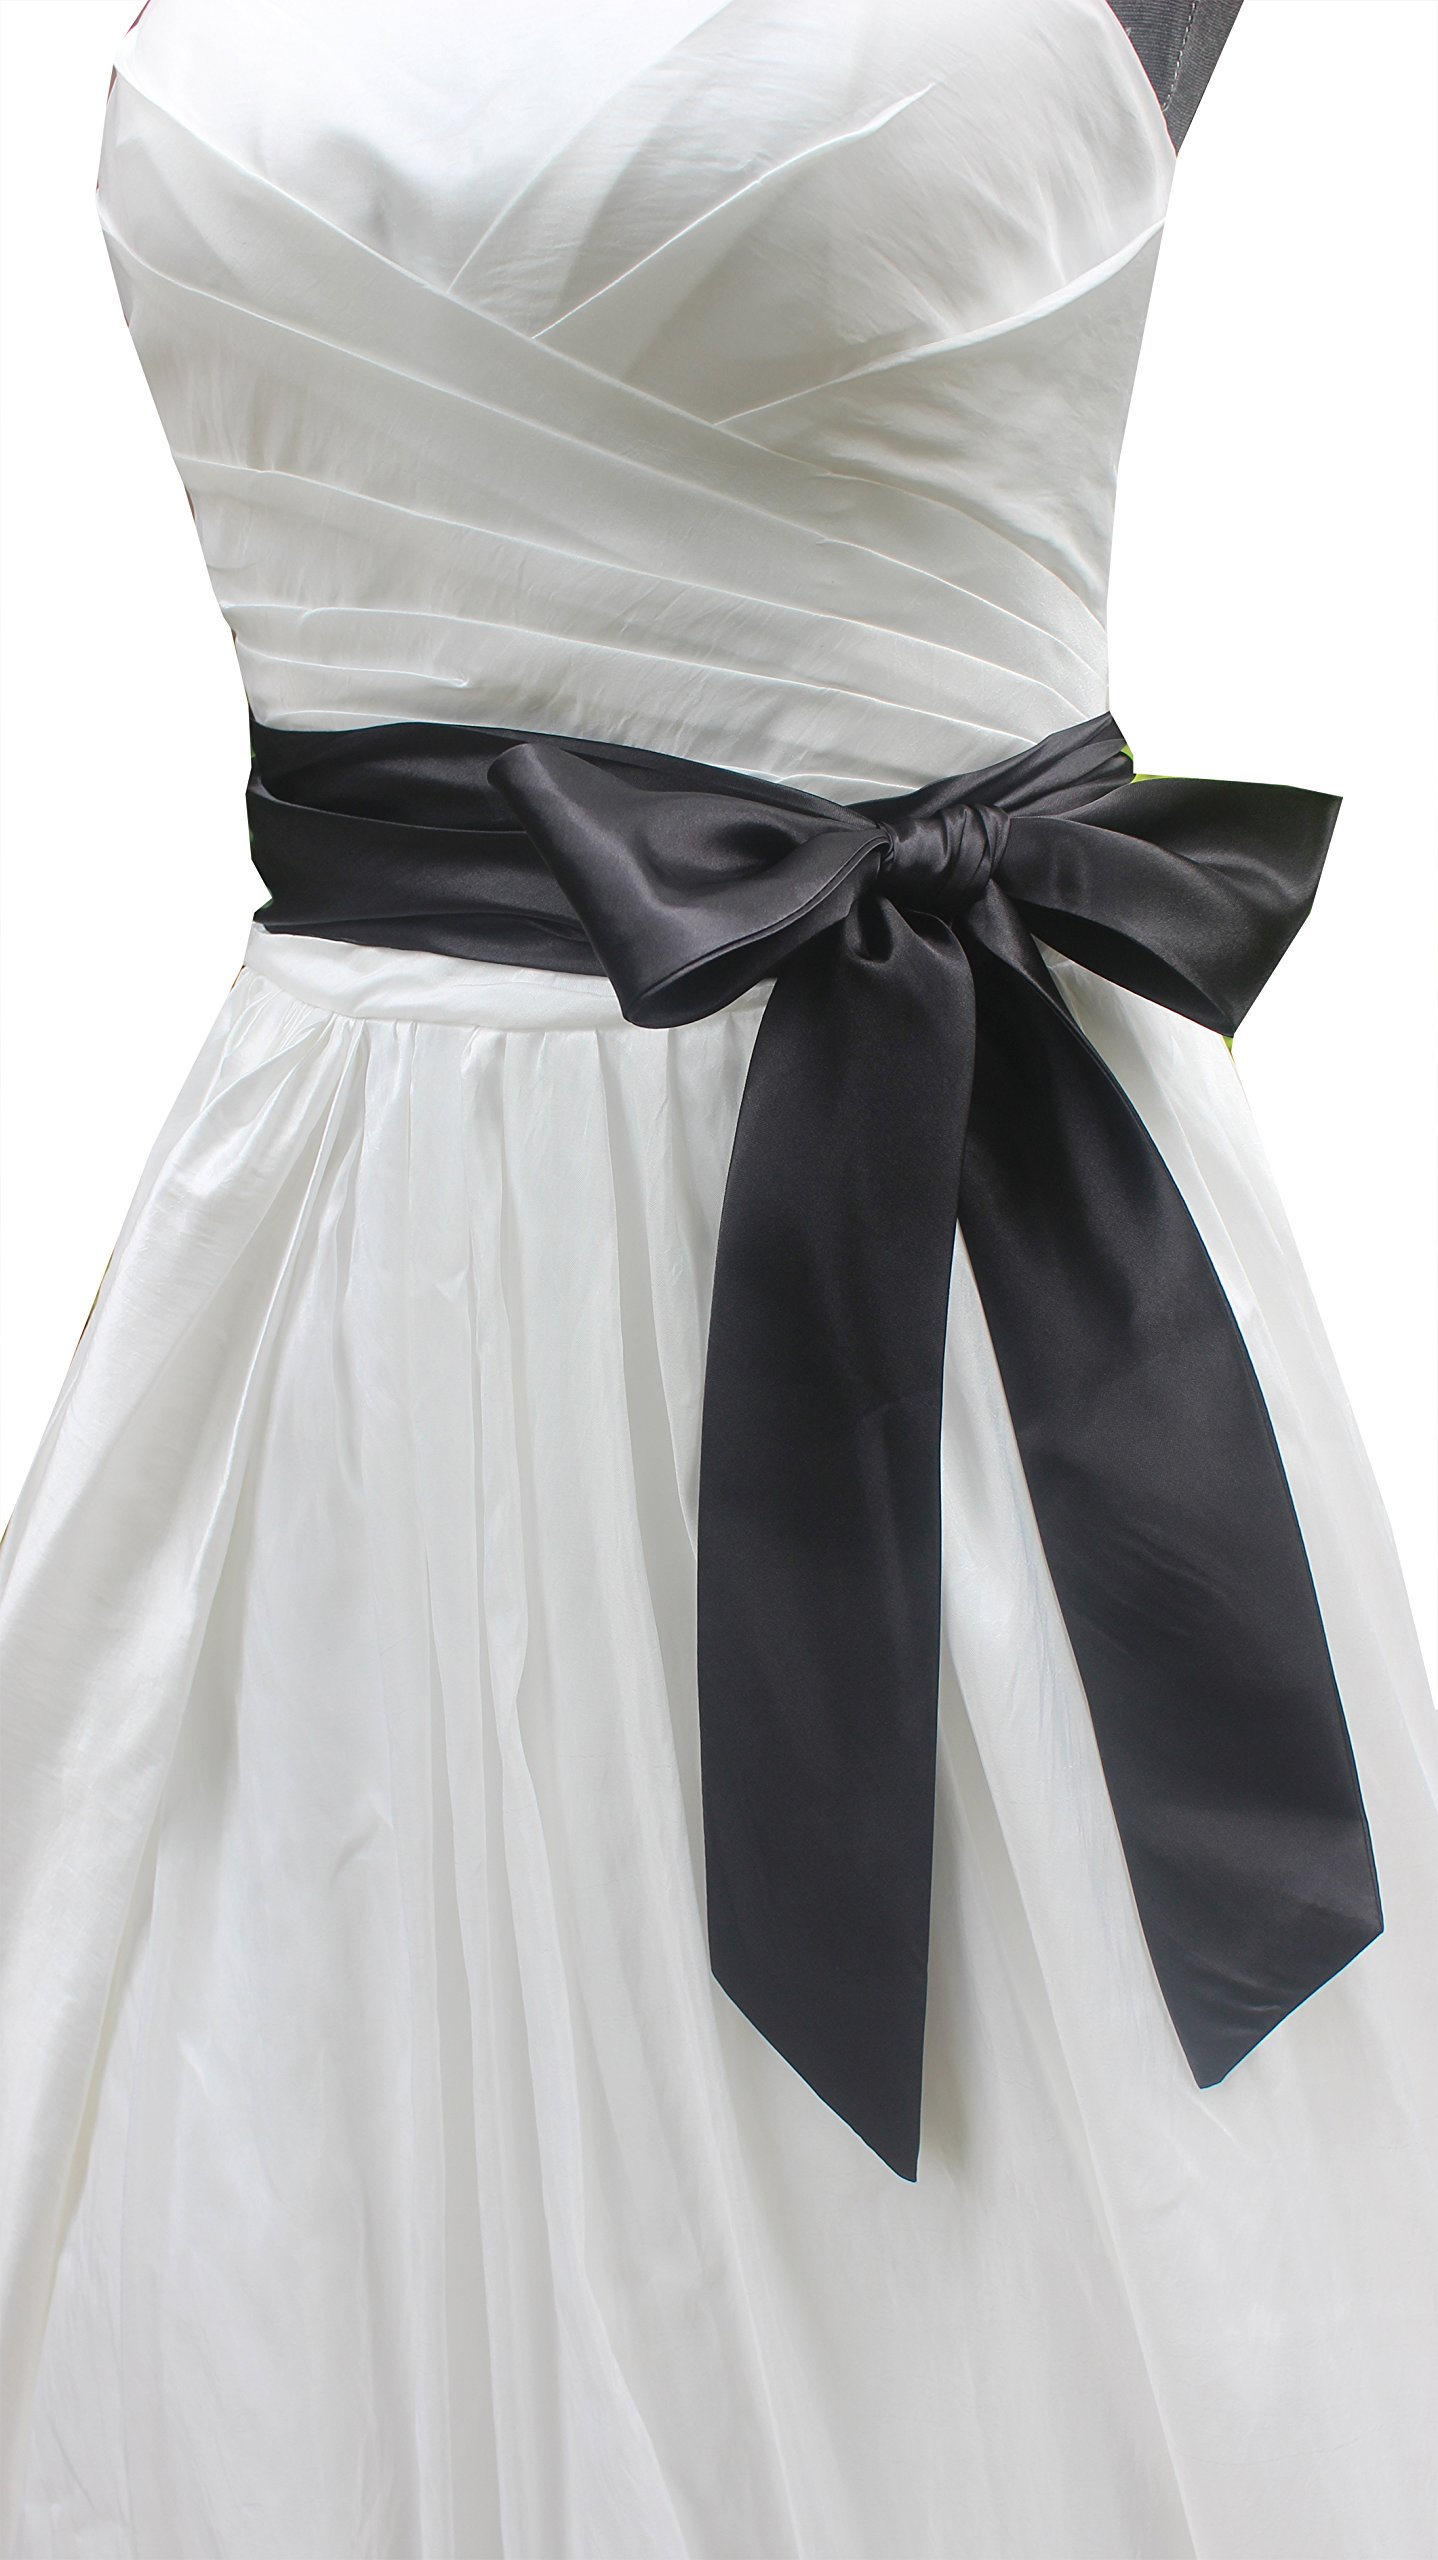 Wedding satin sash belt for special occasion ddress bridal sash (Black)